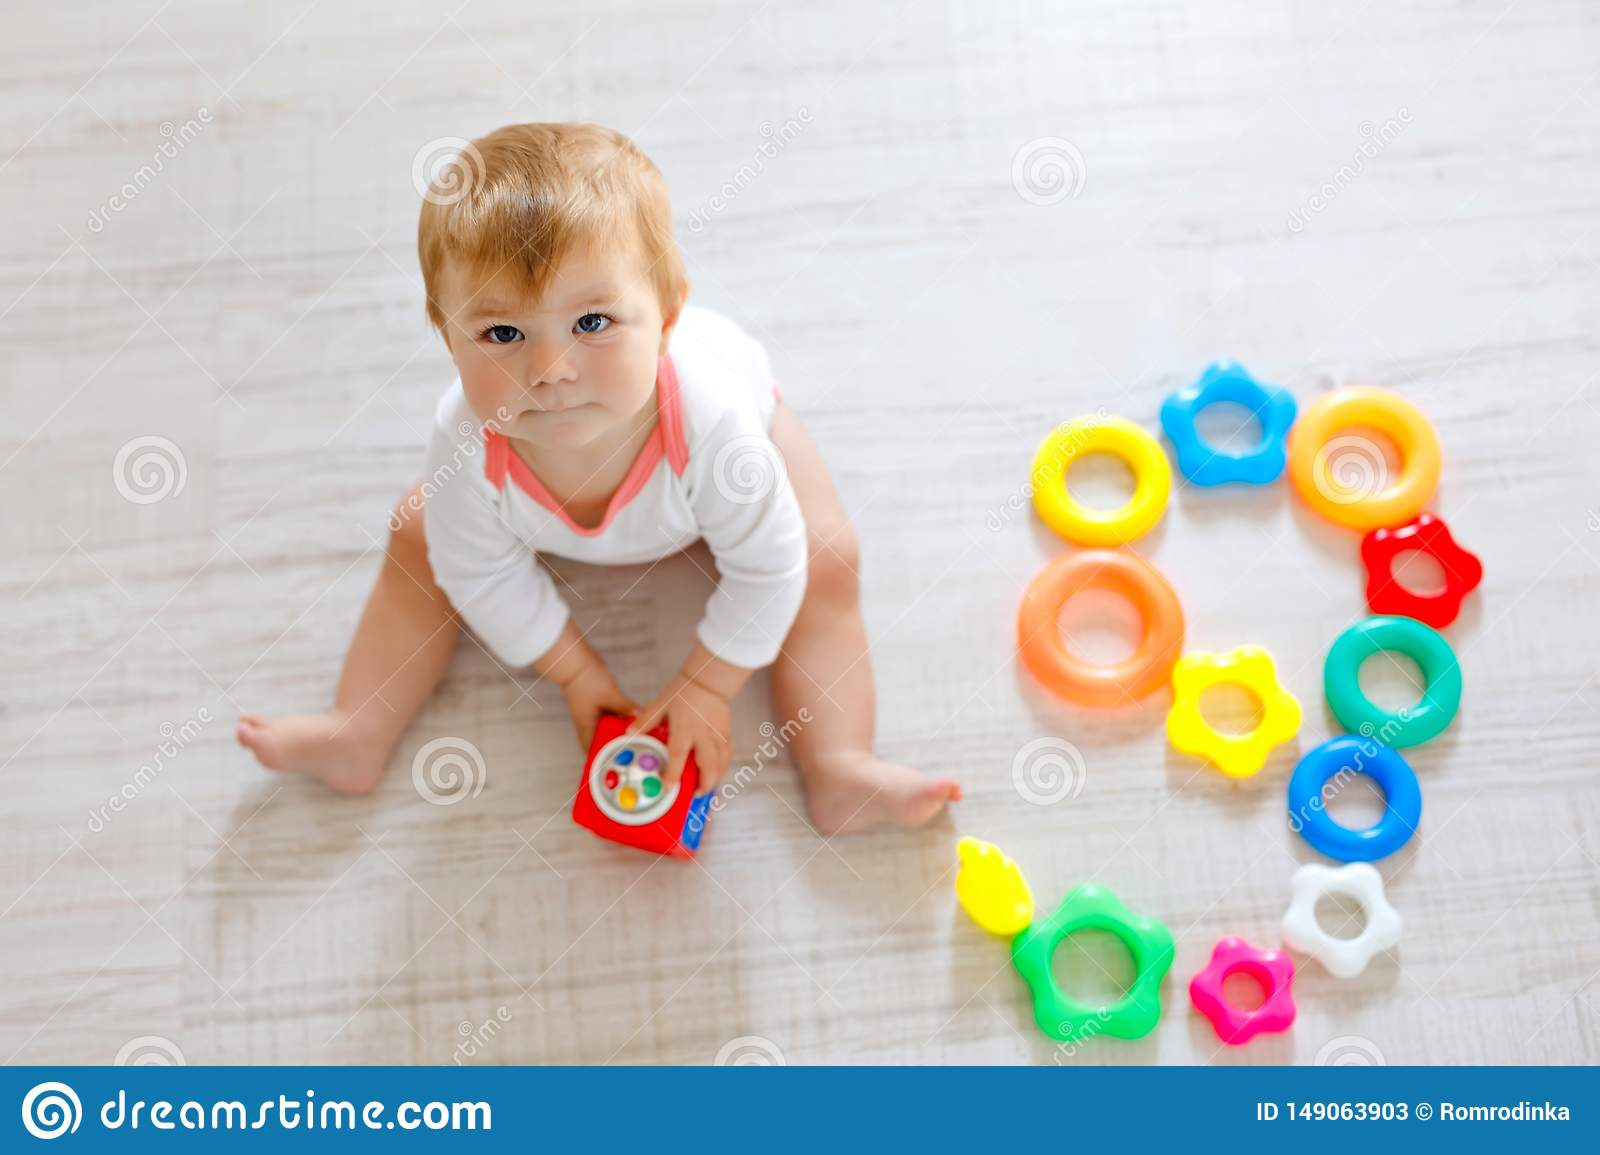 Adorable baby girl playing with educational toys in nursery. Happy healthy child having fun with colorful different toys